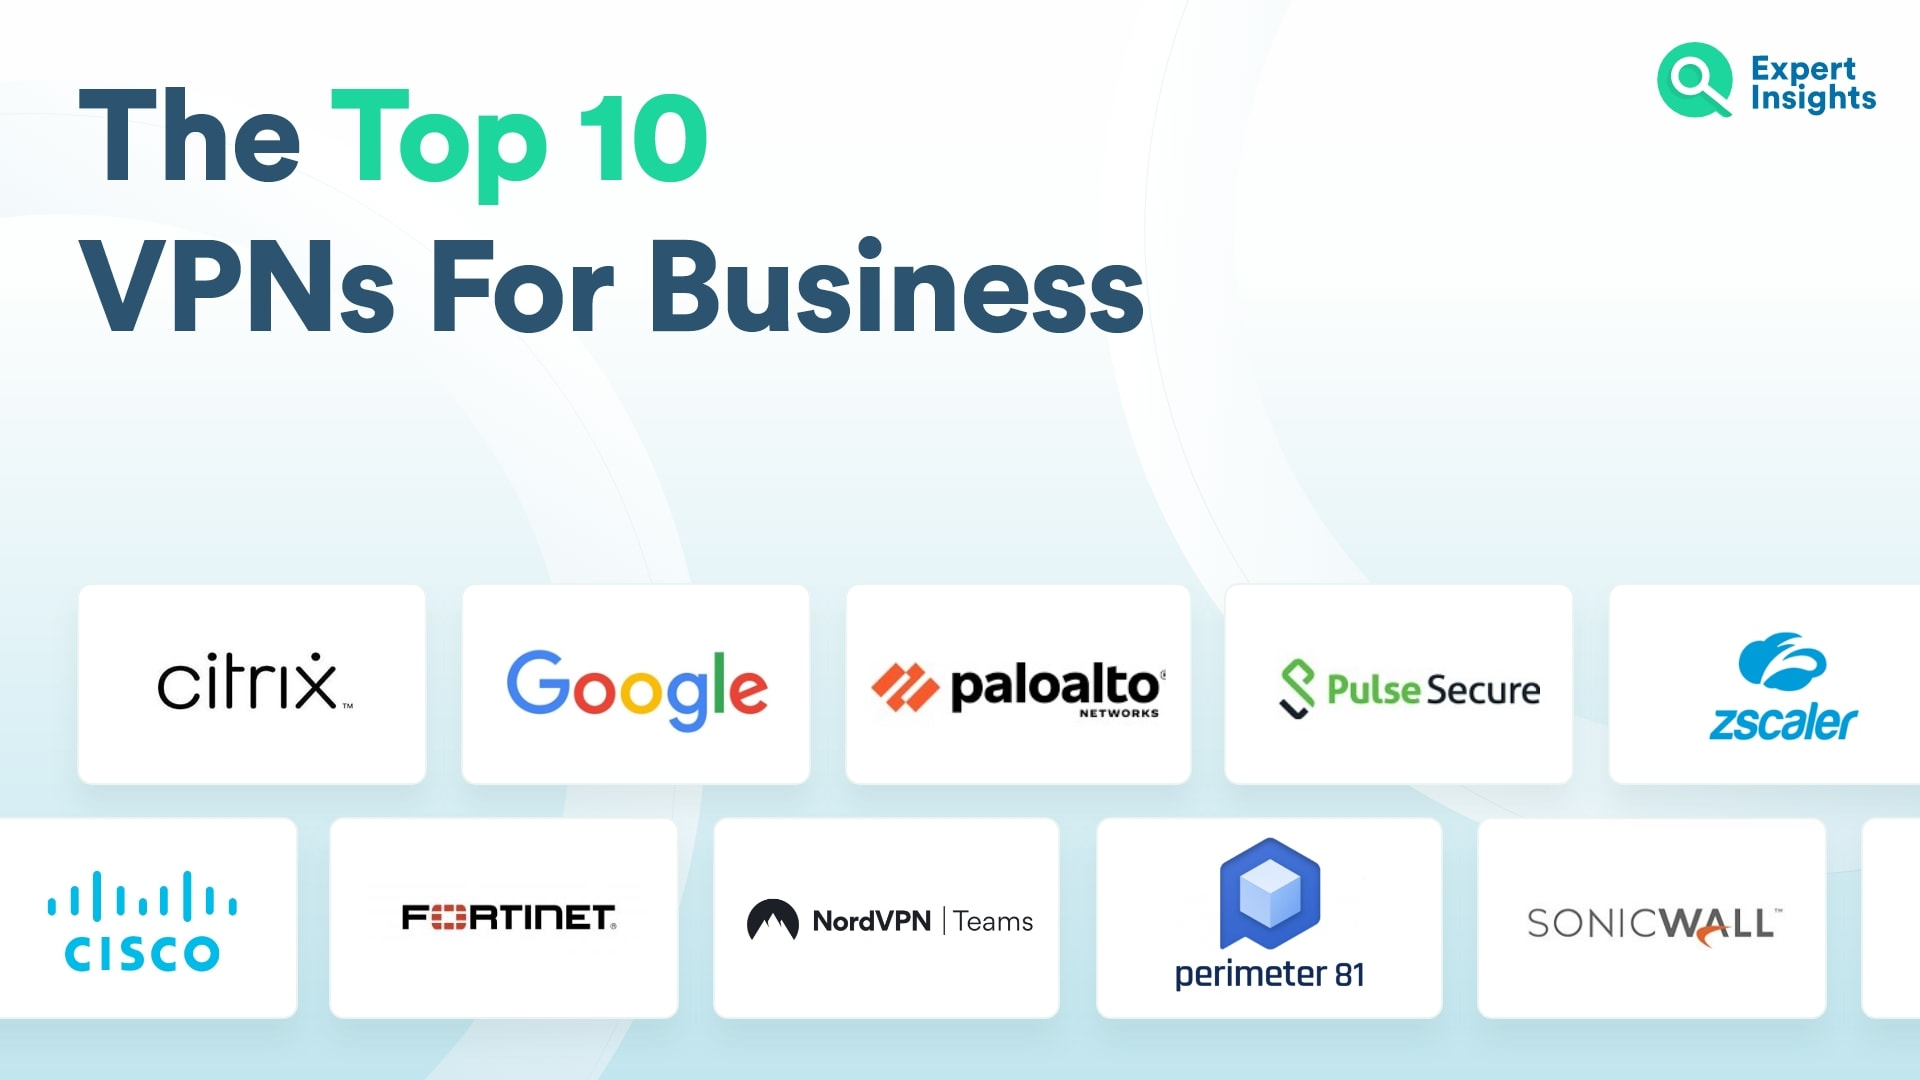 Top 10 VPNs For Business - Expert Insights